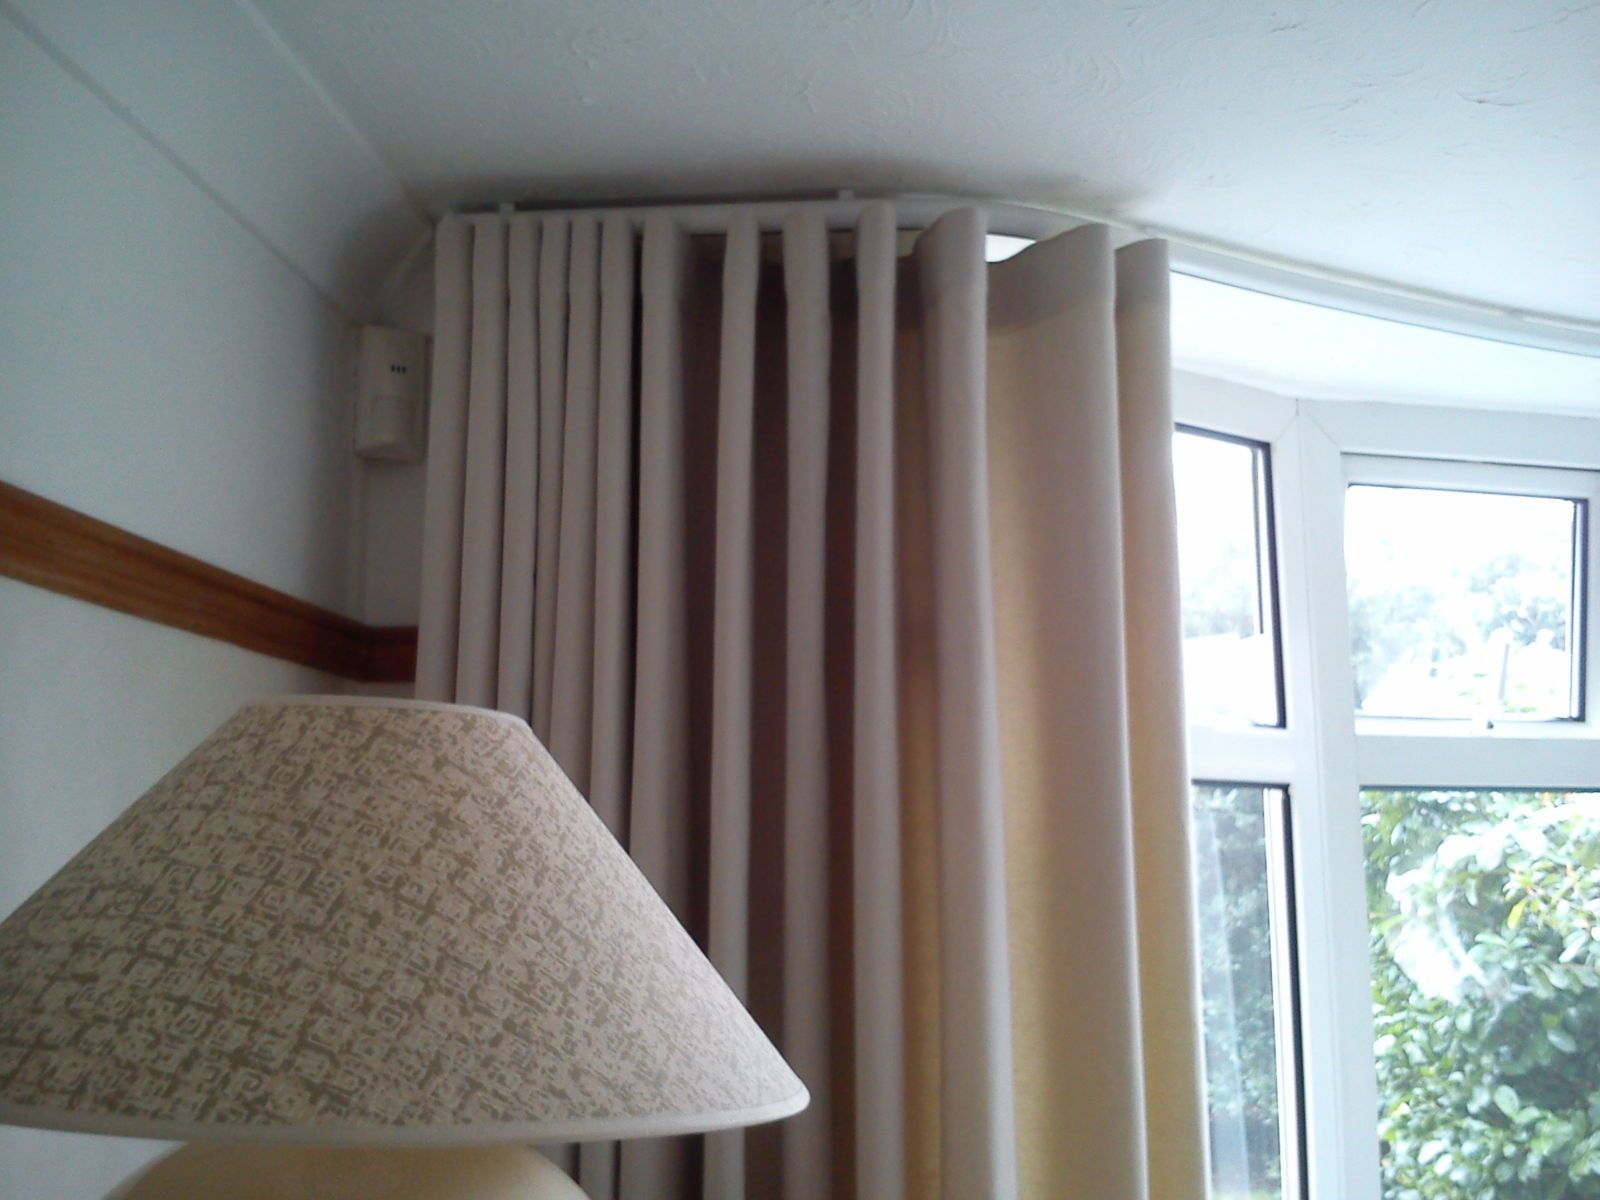 So neat so tidy Silent Gliss Metropole ceiling fitted to bay with